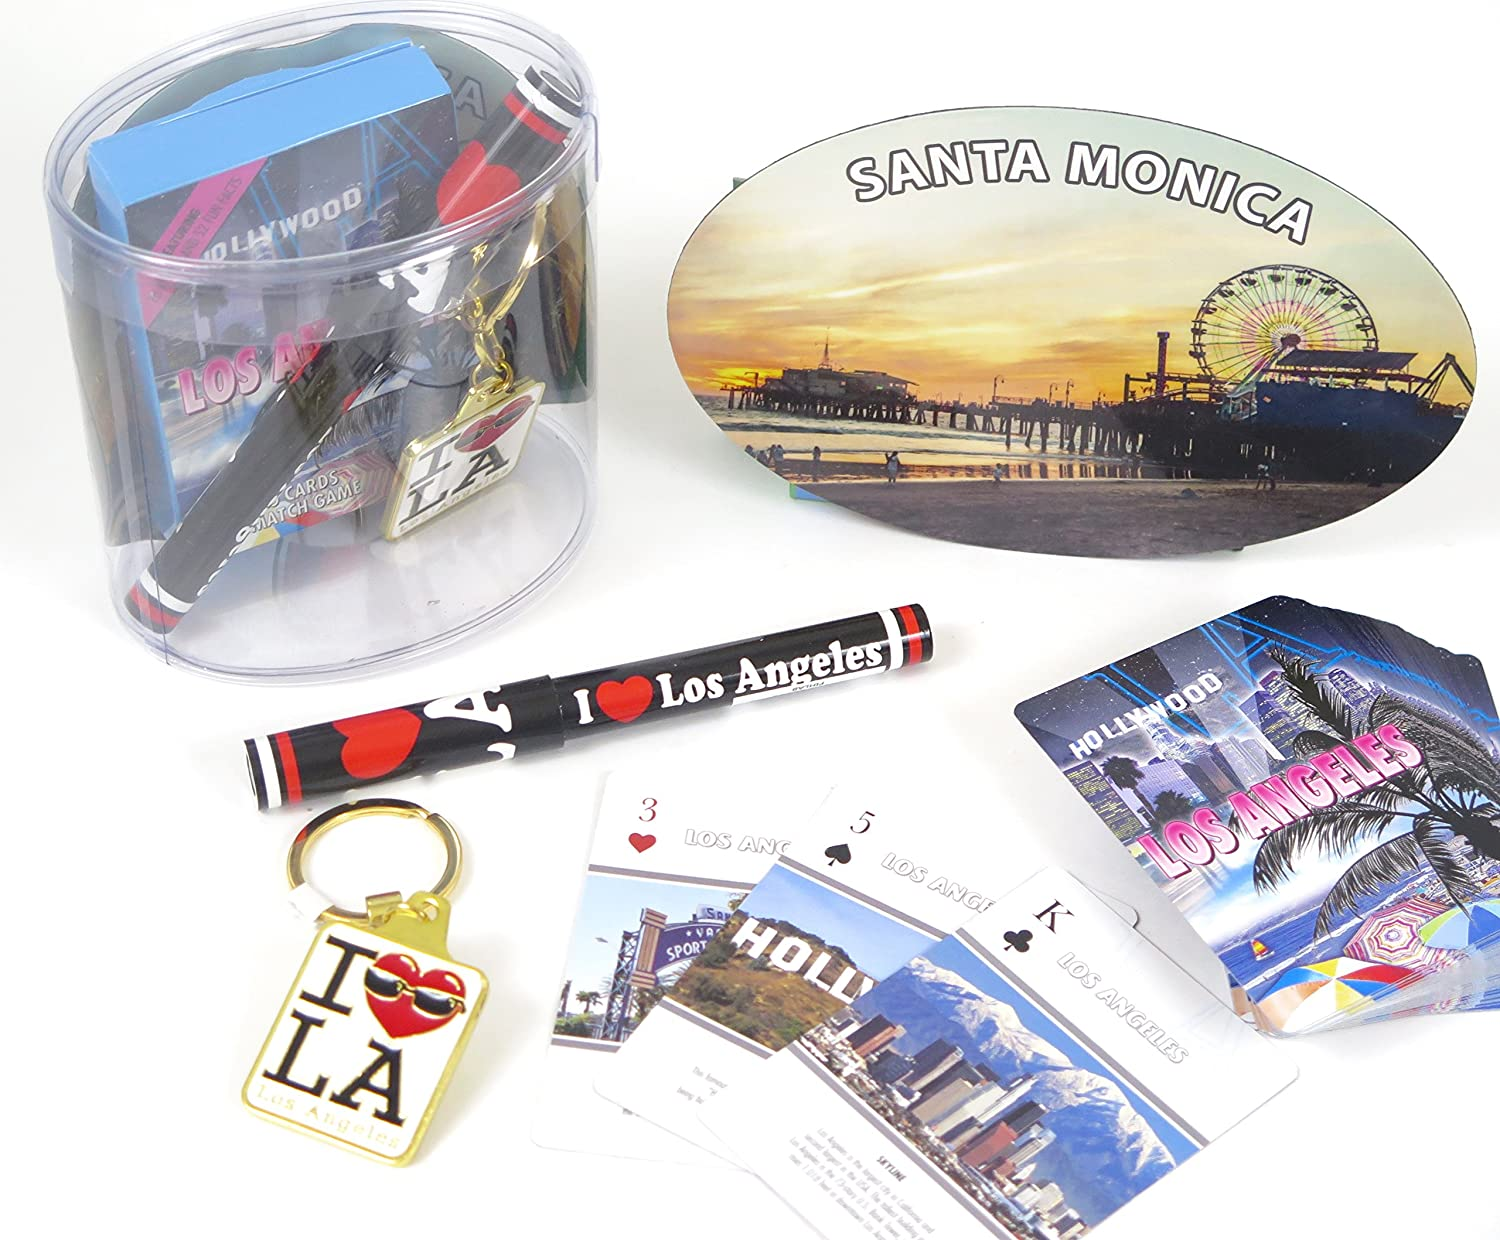 I love LA Los Angeles Souvenir gift box set includes Los Angeles playing cards and pen also includes key ring and Santa Monica large oval magnet.